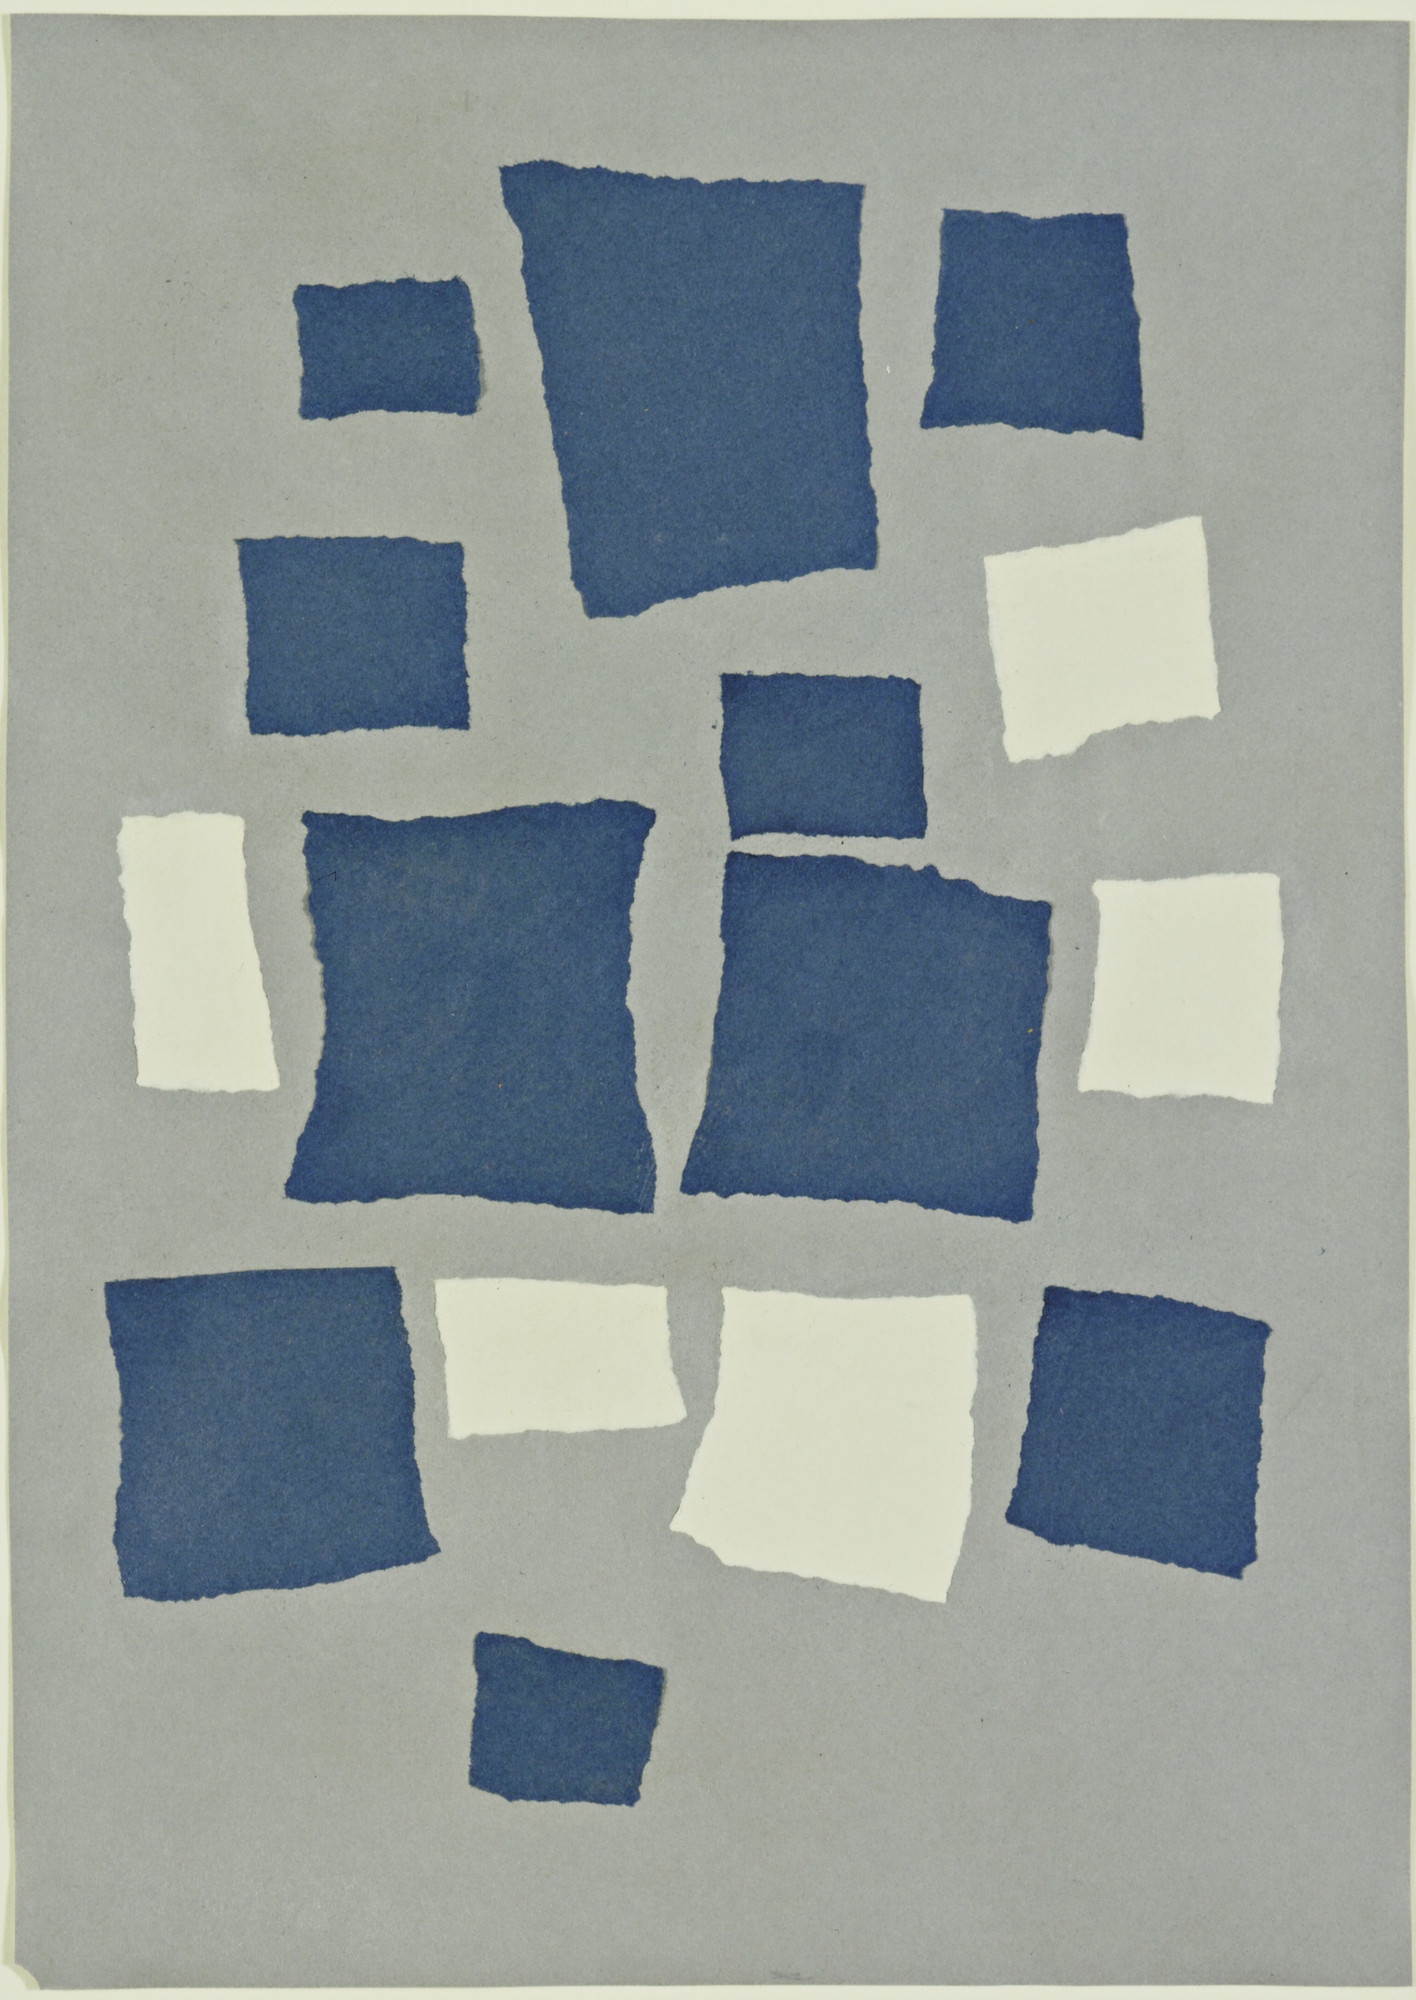 Jean (Hans) Arp. Untitled (Collage with Squares Arranged according to the Laws of Chance). 1916–17